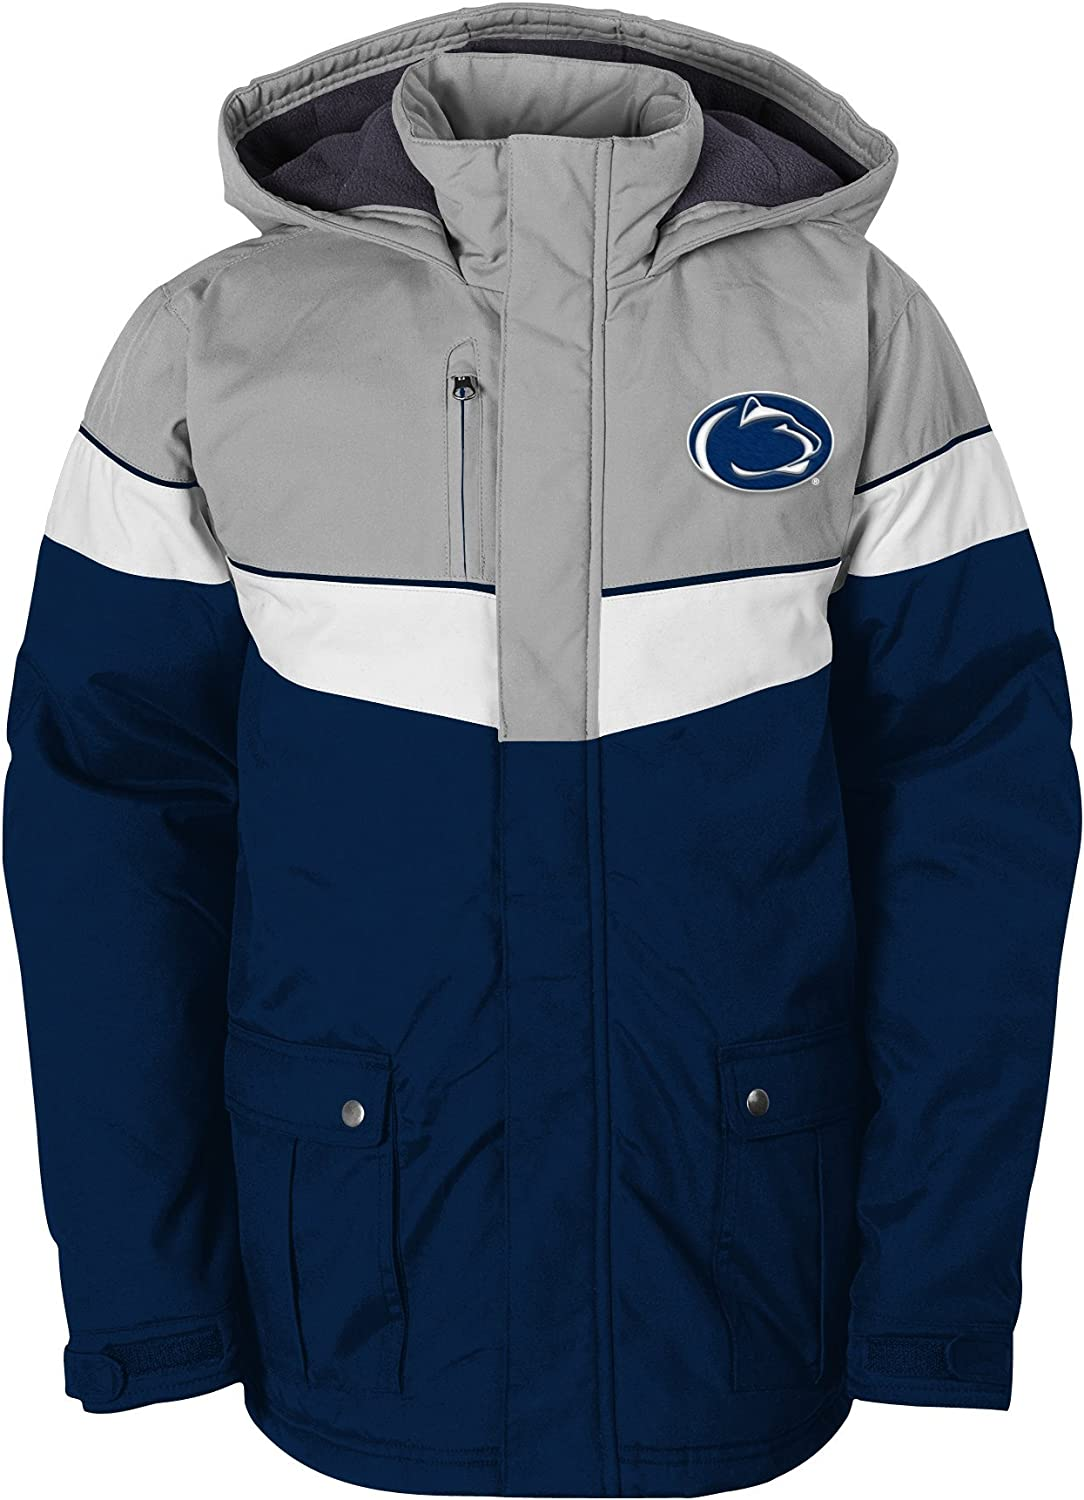 NCAA by Outerstuff NCAA Youth Boys All American Heavy Weight Parka Jacket